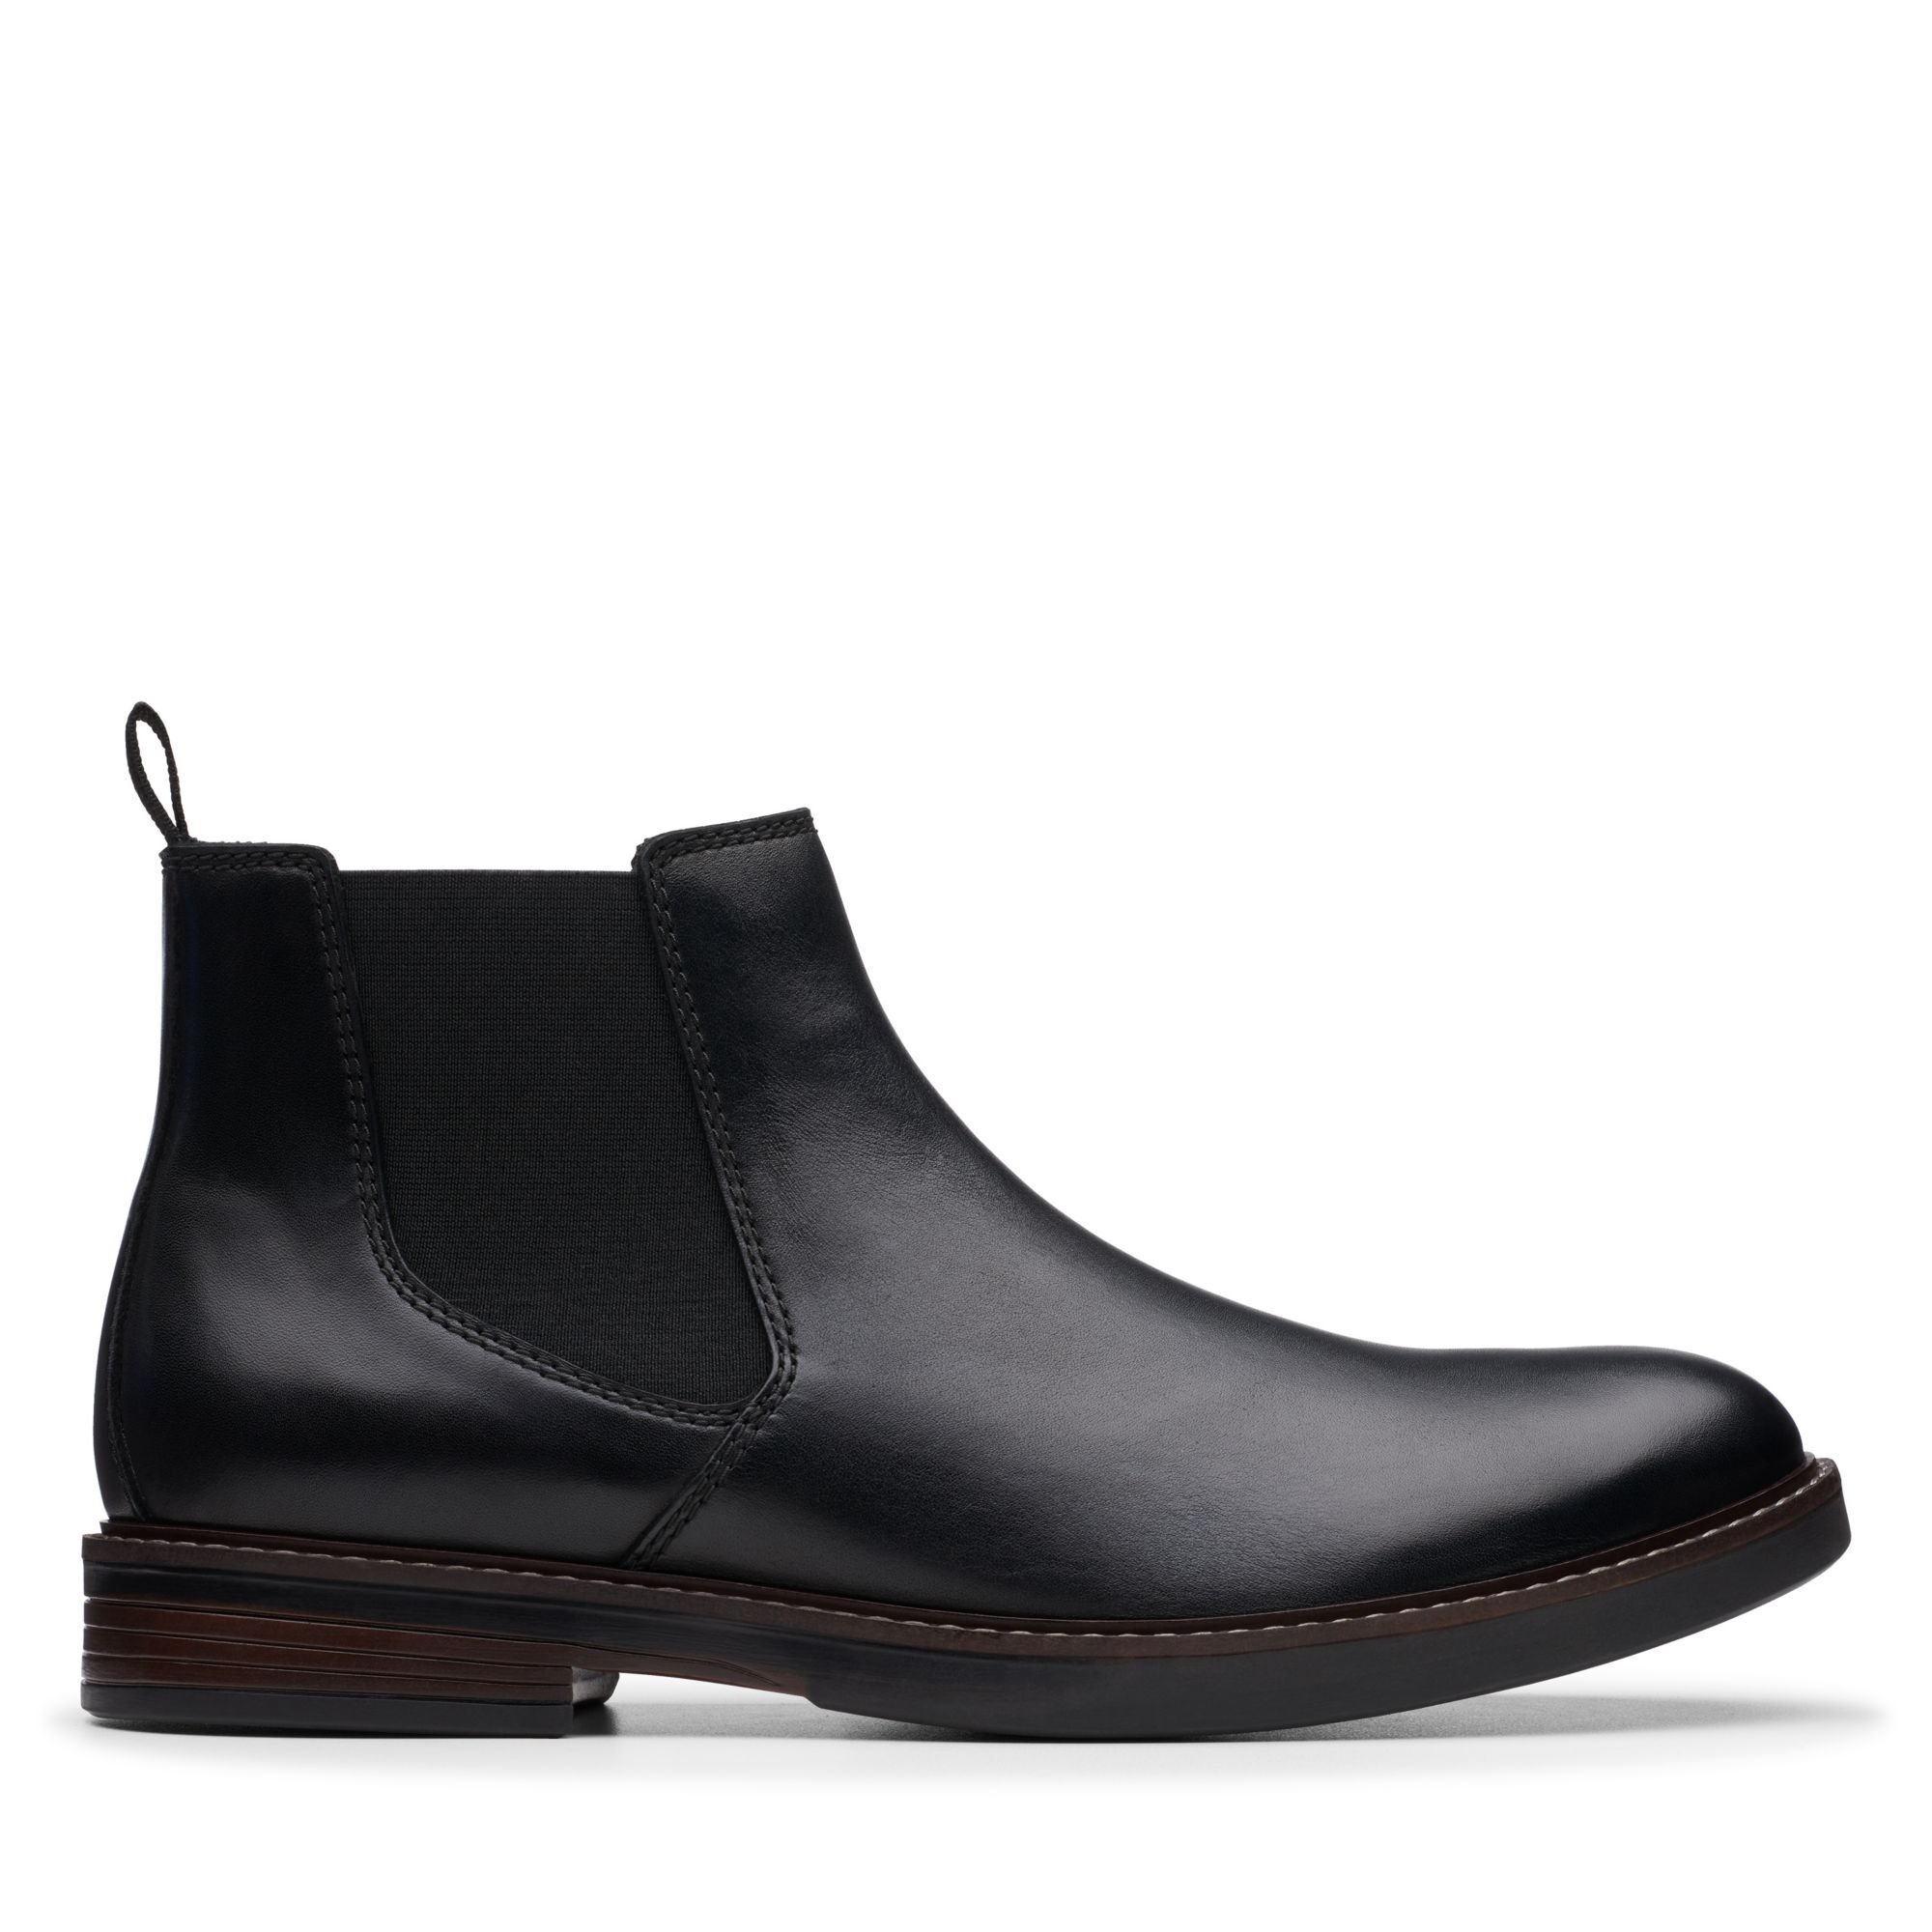 New Collection - Women and Men | Clarks